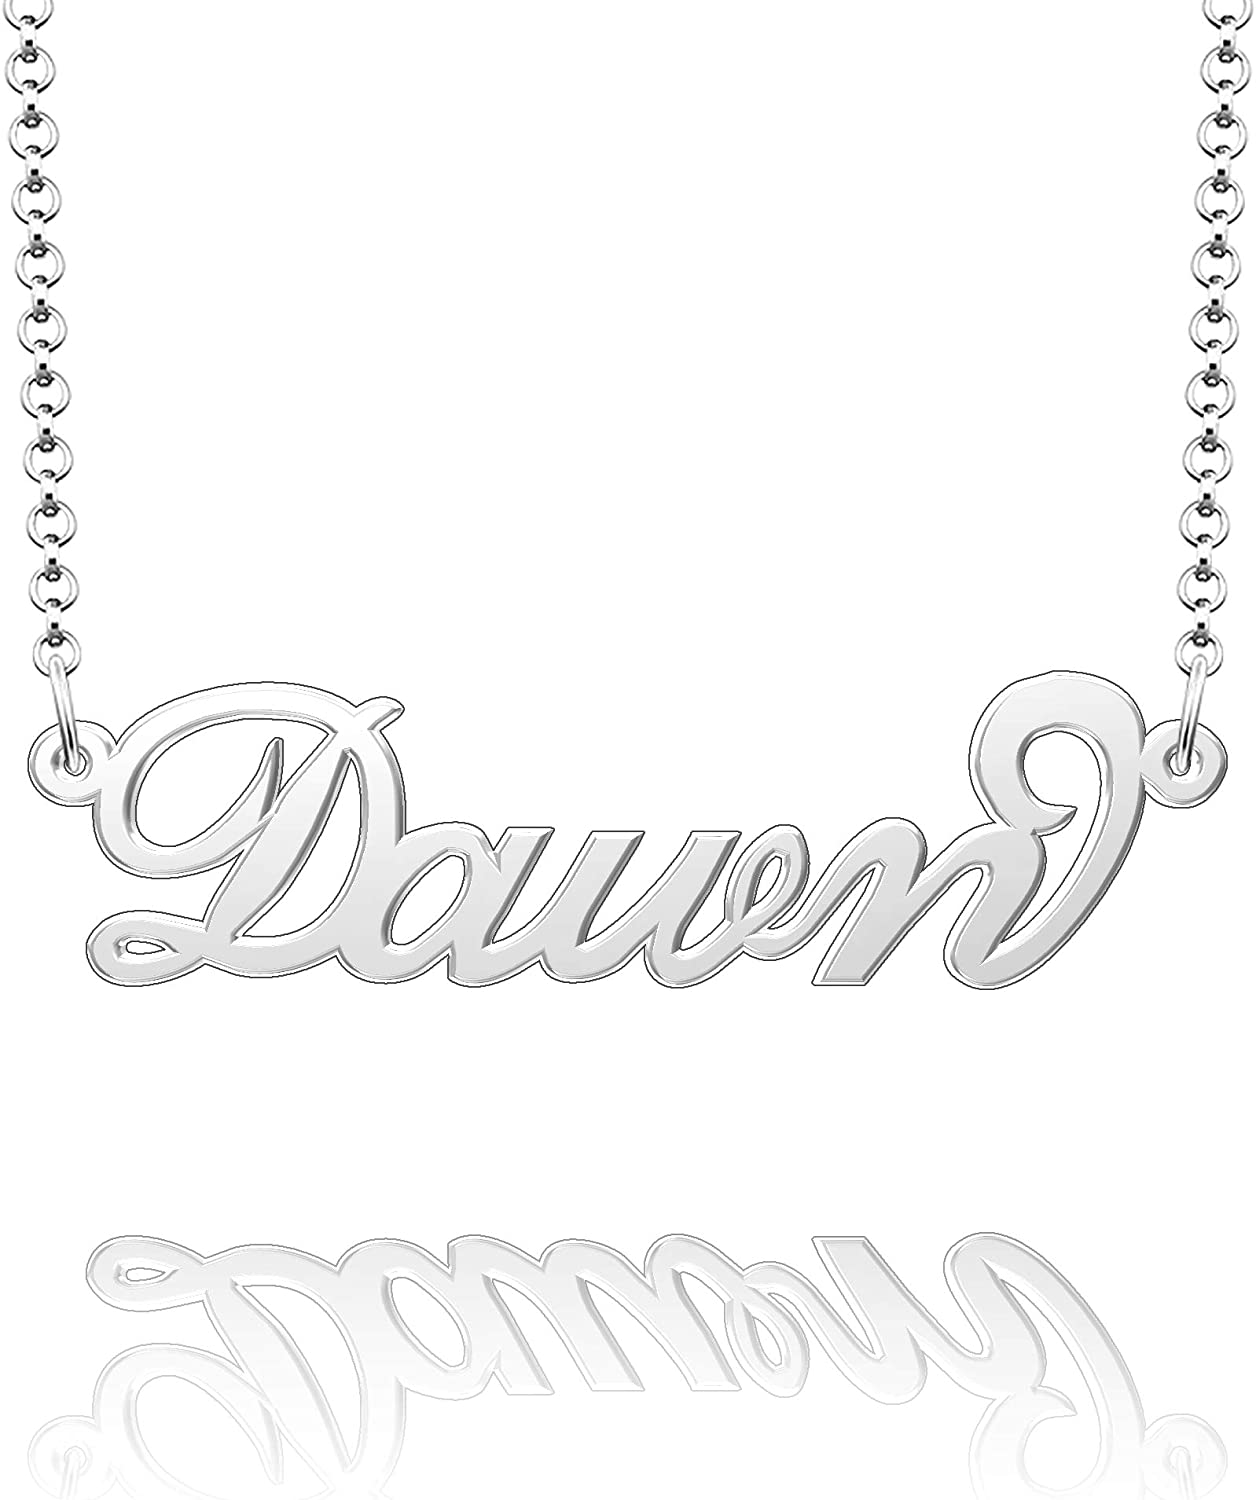 Moonlight Collections Dawn Custom Necklace Personalized Gift for Women Handmade Chain Pendant